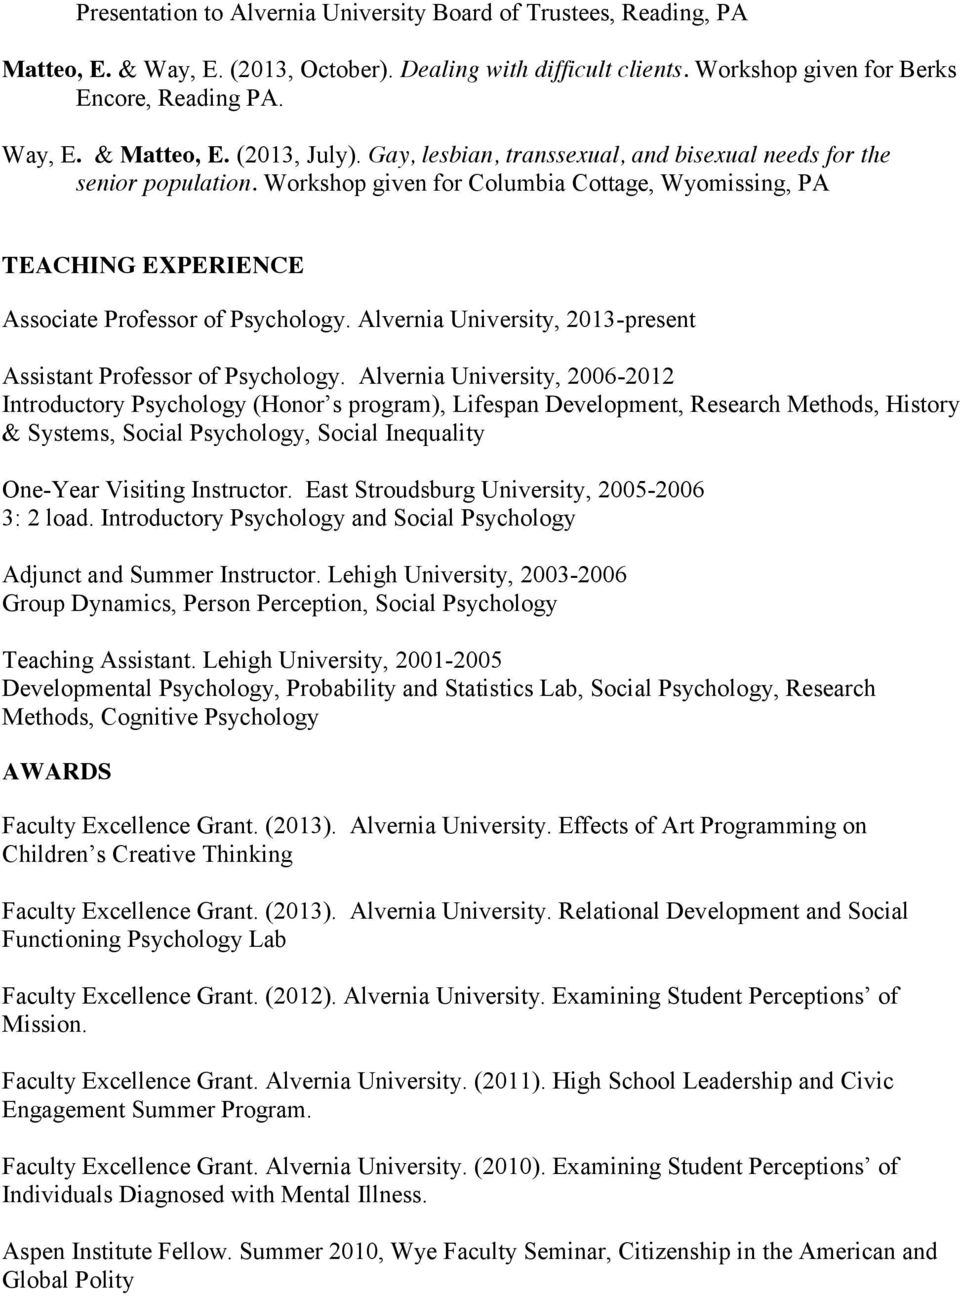 Alvernia University, 2013-present Assistant Professor of Psychology.